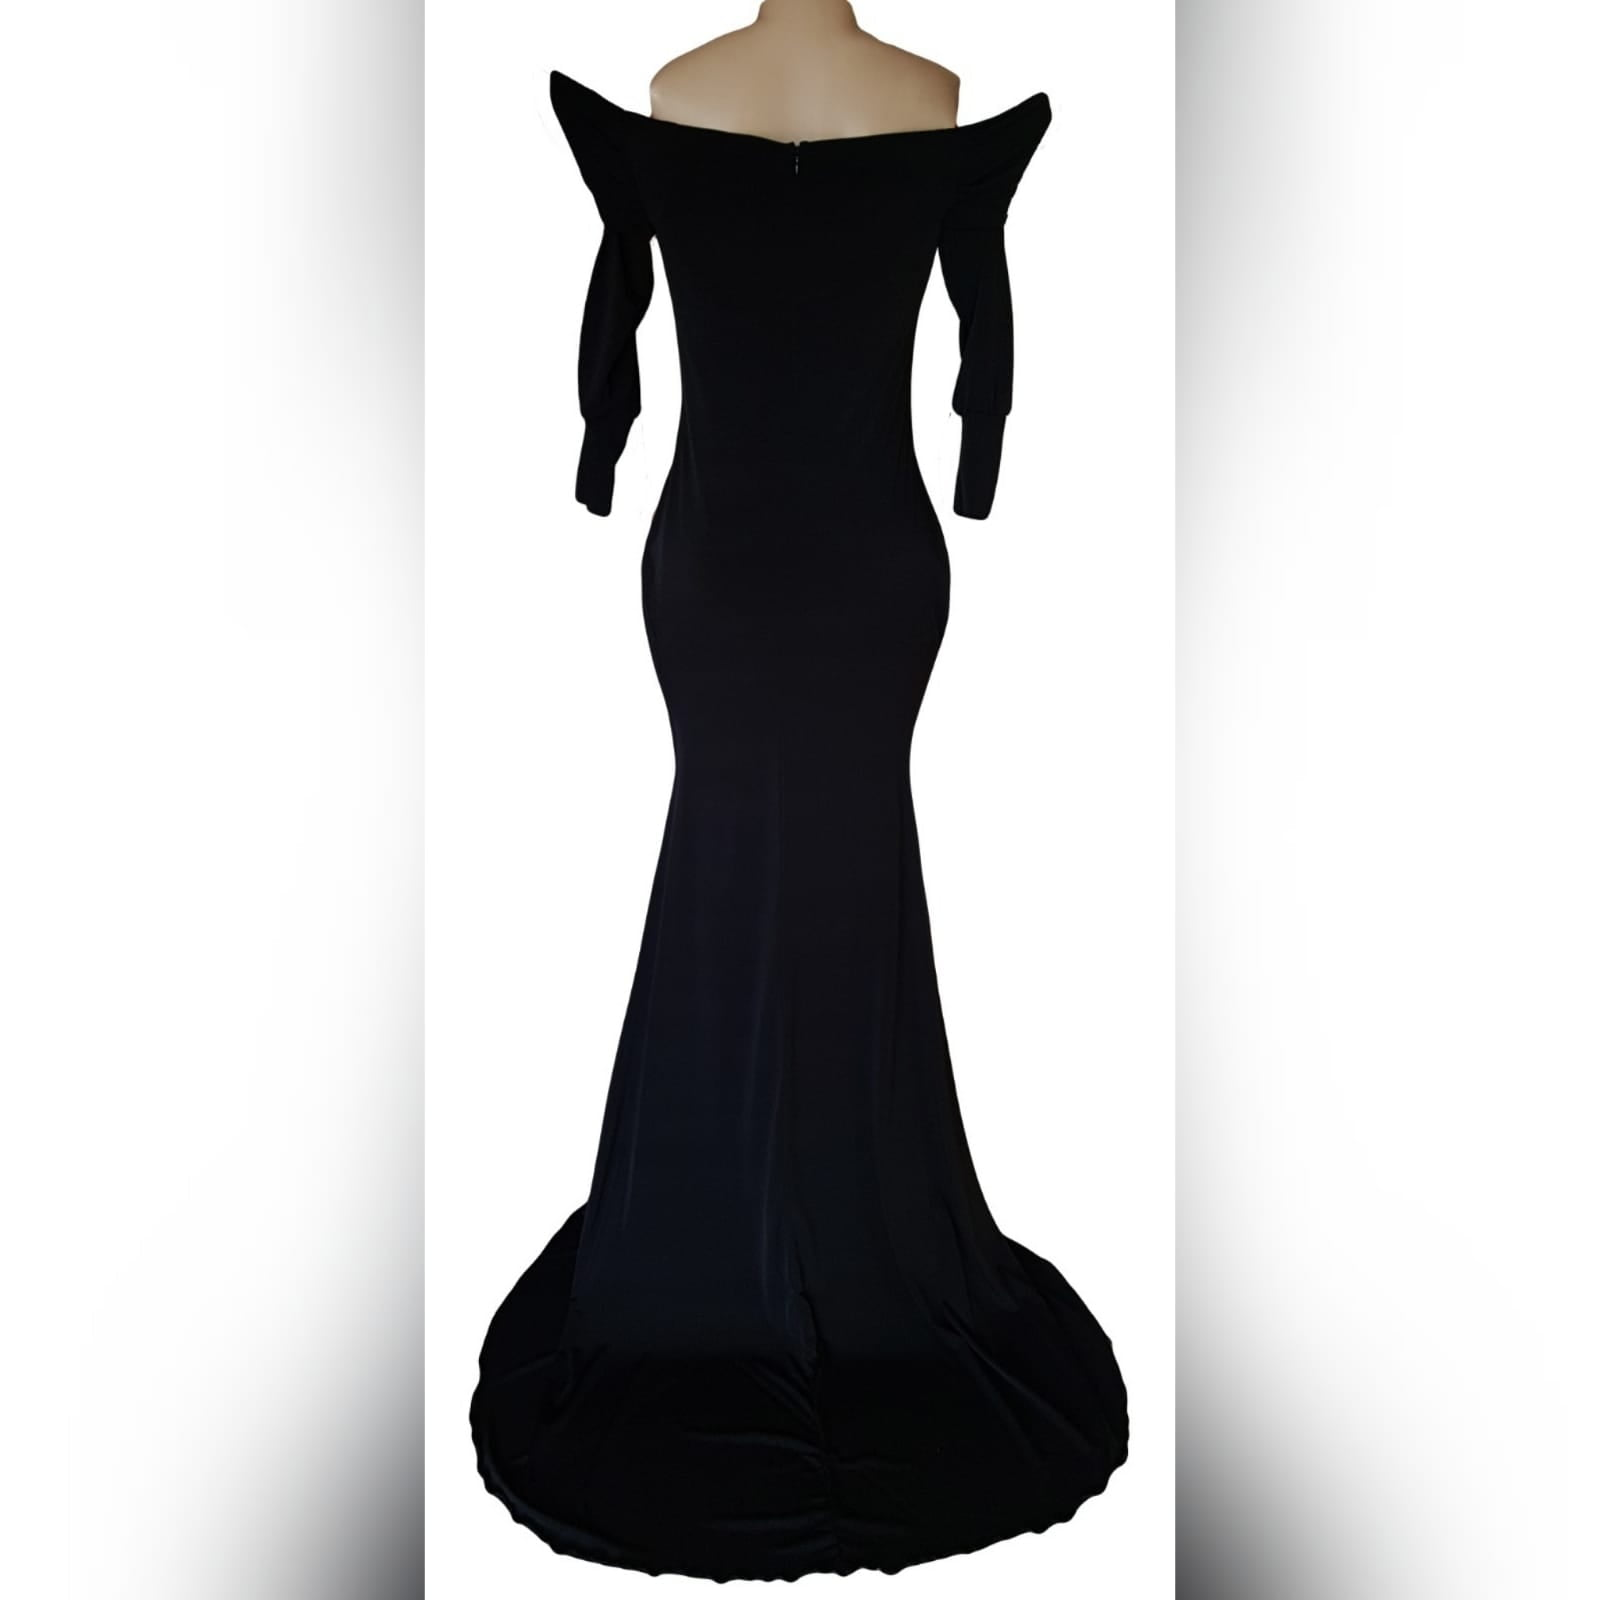 """Simple elegant off shoulder black dress 2 <blockquote>""""the woman who follows the crowd will usually go no further than the crowd. The woman who walks alone is likely to find herself in places no one has ever been before. """"albert einstein</blockquote> a simple elegant off shoulder black dress created for my client to fit her like a glove. The perfect black dress to go to any formal event."""